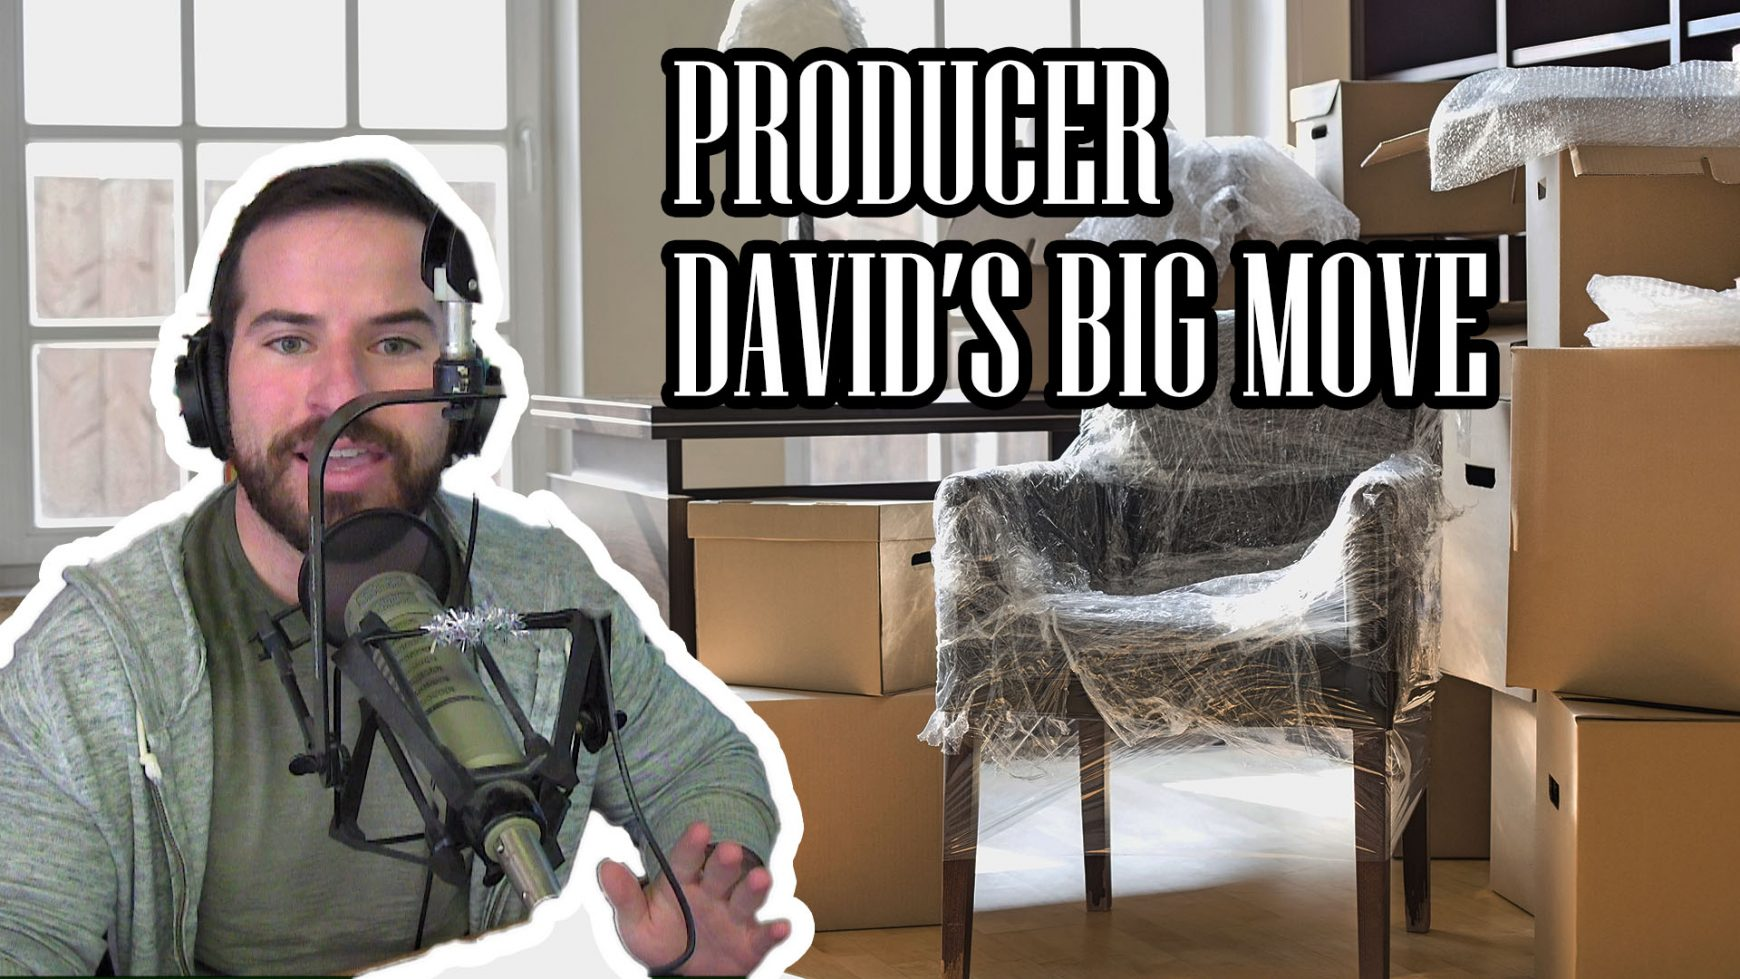 LISTEN: PRODUCER DAVID'S BIG MOVE